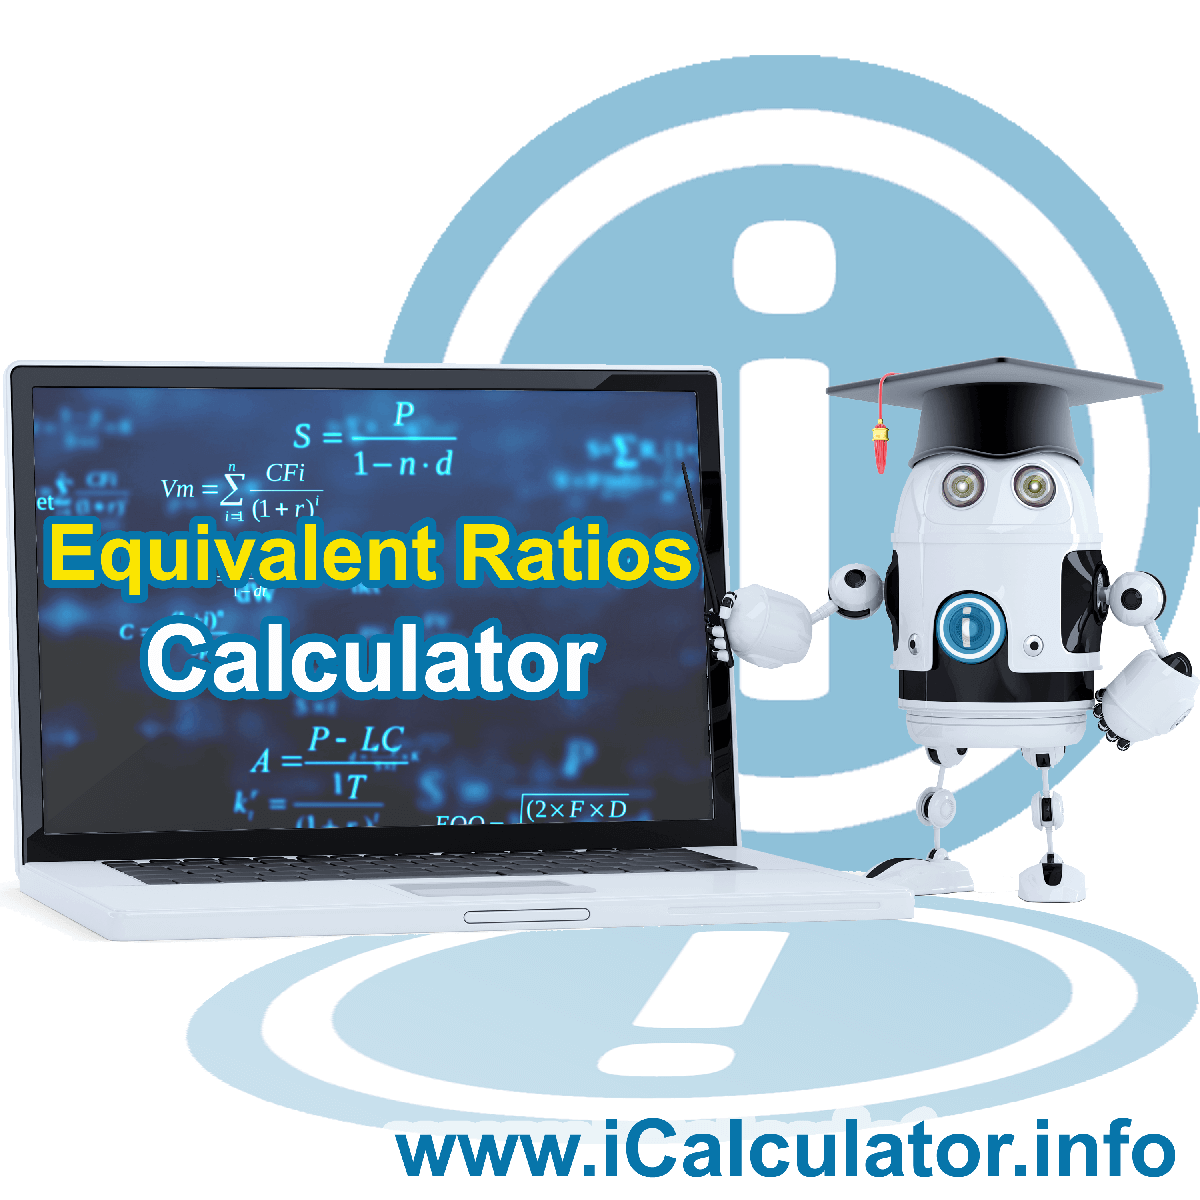 Equivalent Ratios. This image shows the properties and equivalent ratios formula for the Equivalent Ratios